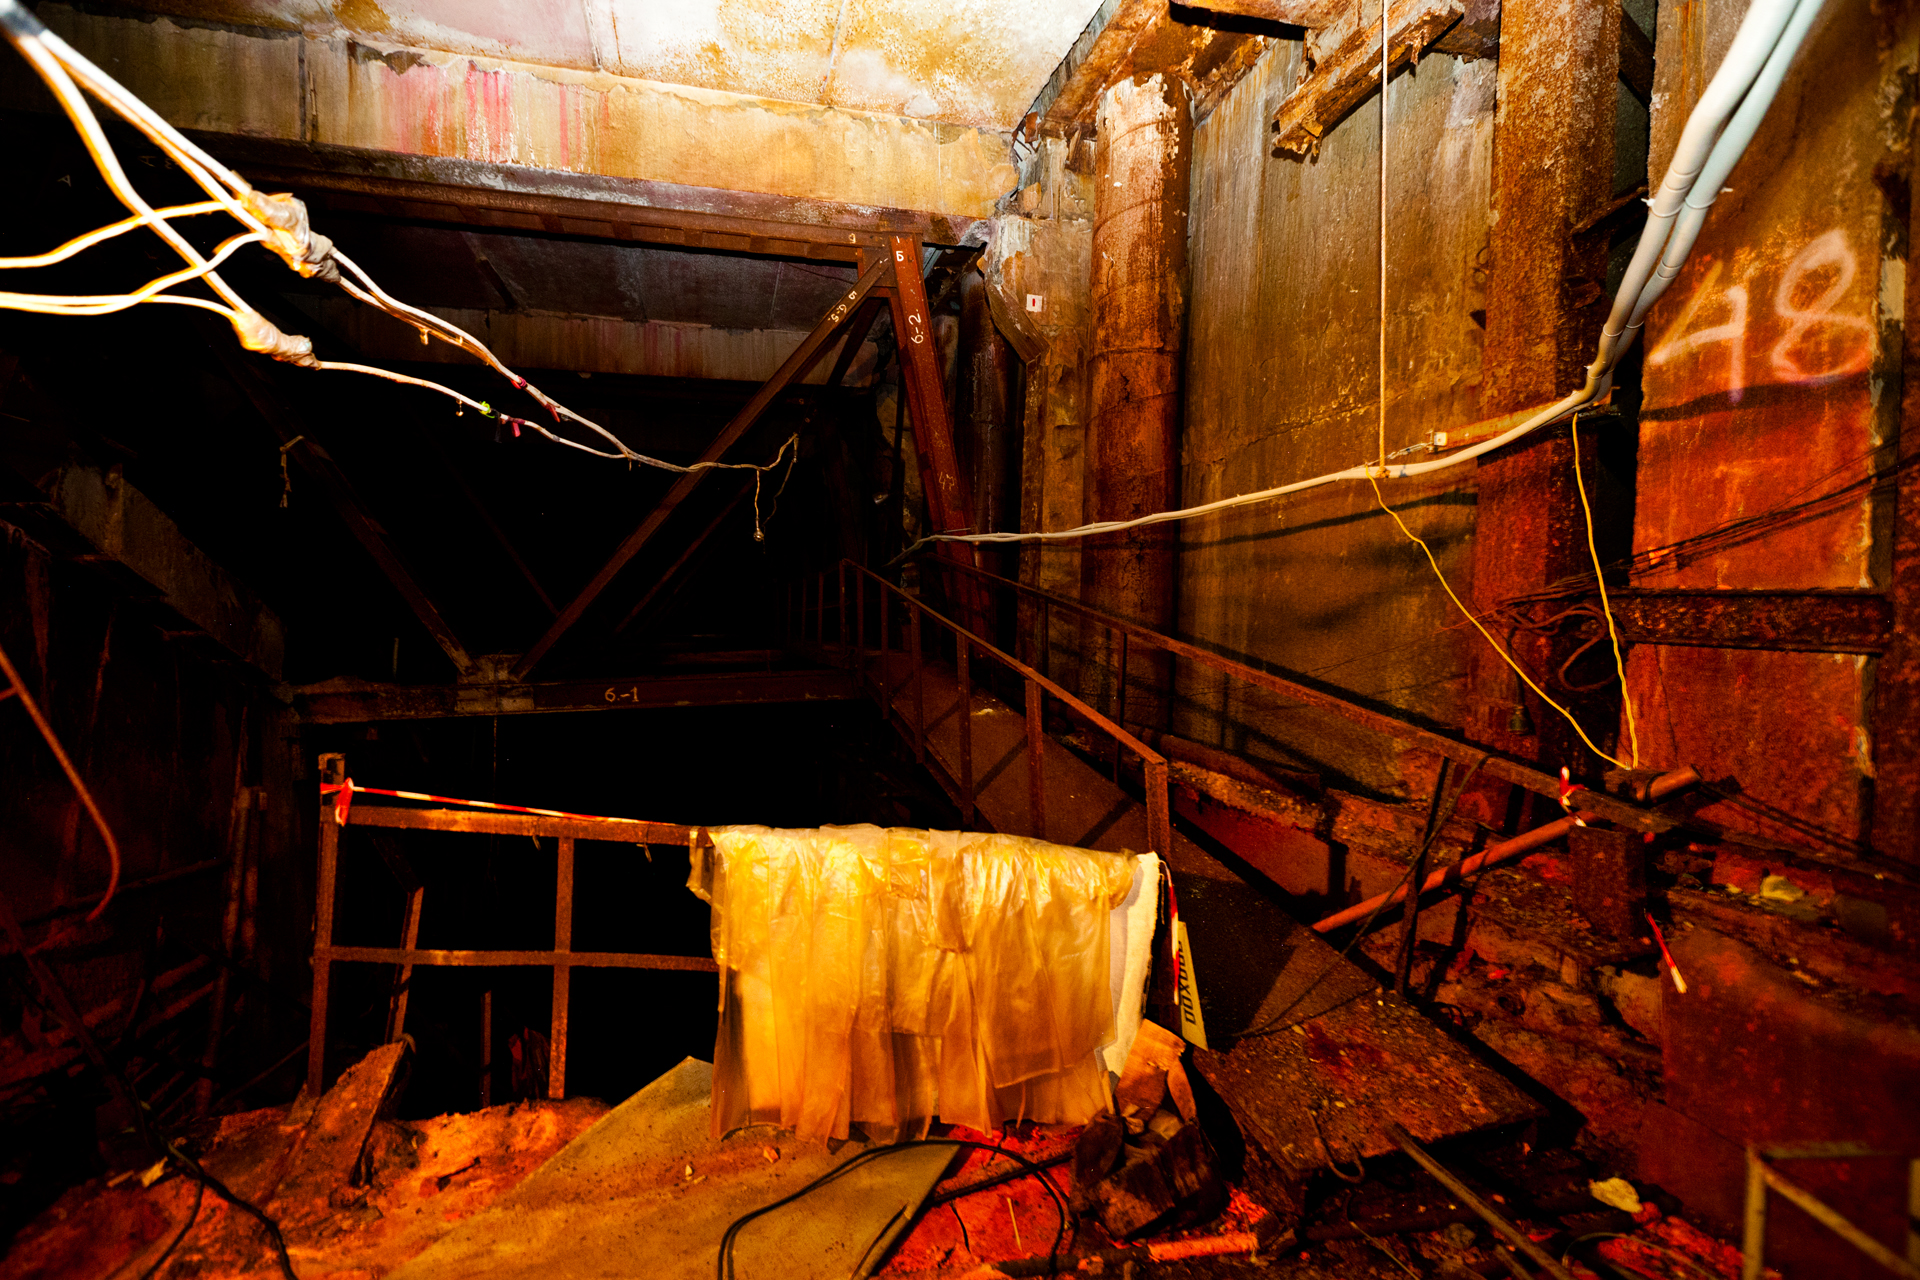 Inside unit #4, dimly lit tunnels lead to eerie rooms strewn with wires, pieces of shredded metal and other debris covered with contaminated dust.  Chernobyl Nuclear Power Plant, Ukraine